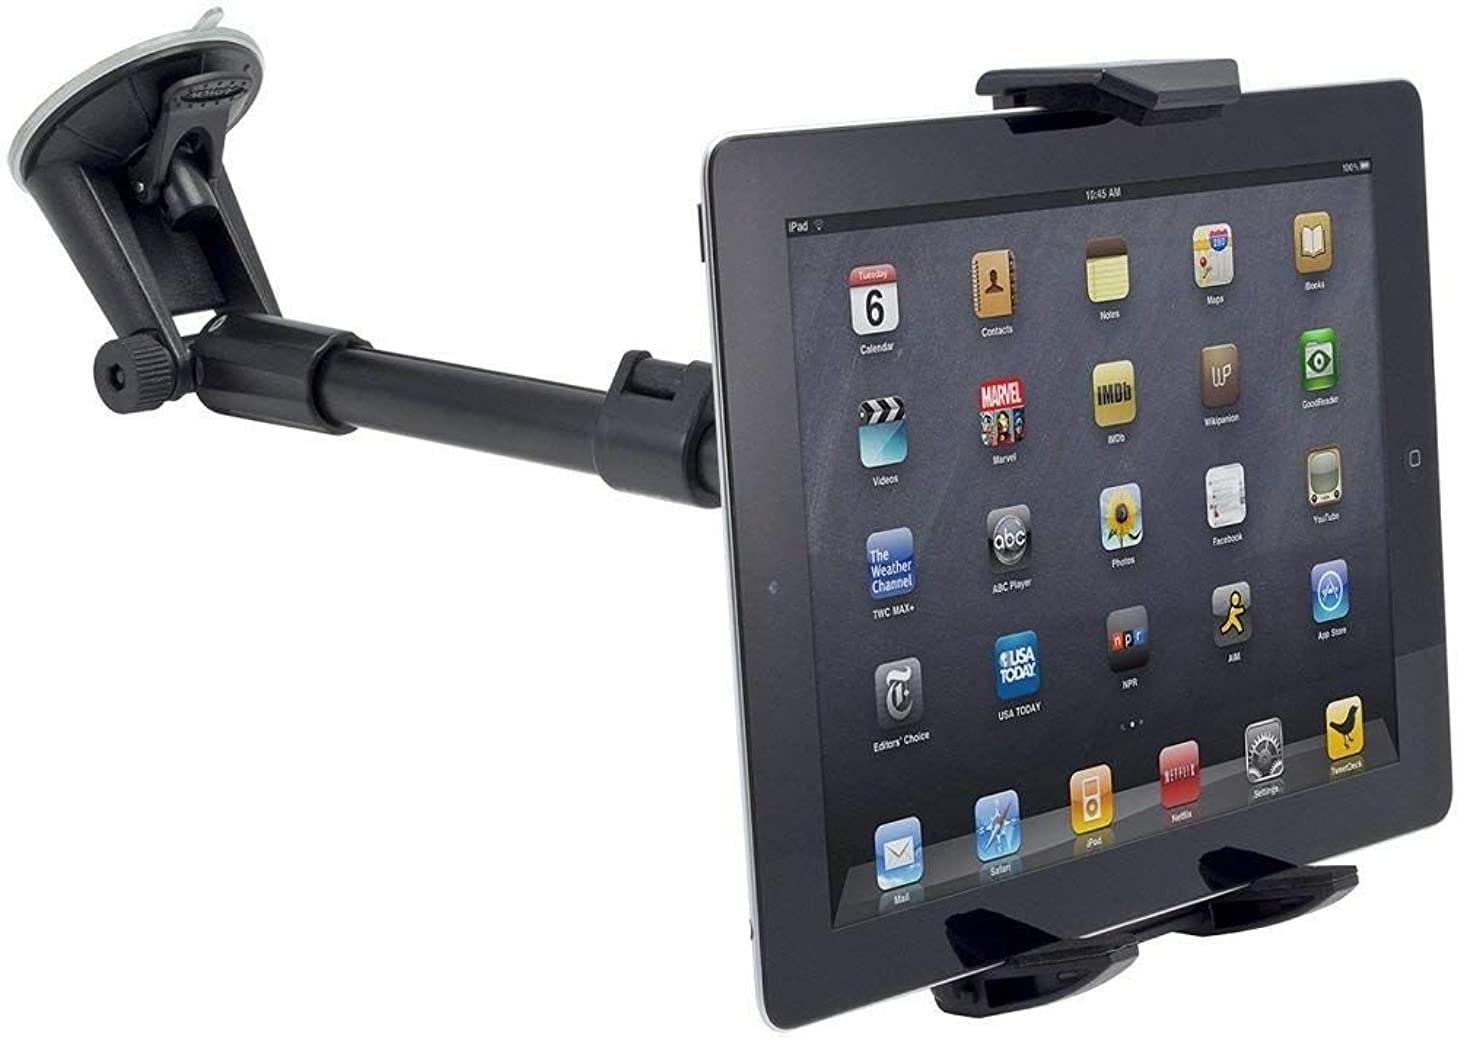 Robust Windshield Tablet Car Mount or Truck Mount Window Holder and Adjustable Arm Extender for Apple iPad Pro 9.7/10.5/11/12.9 Tablet w/Anti-Vibration Swivel Lock Cradle (use with or Without case)